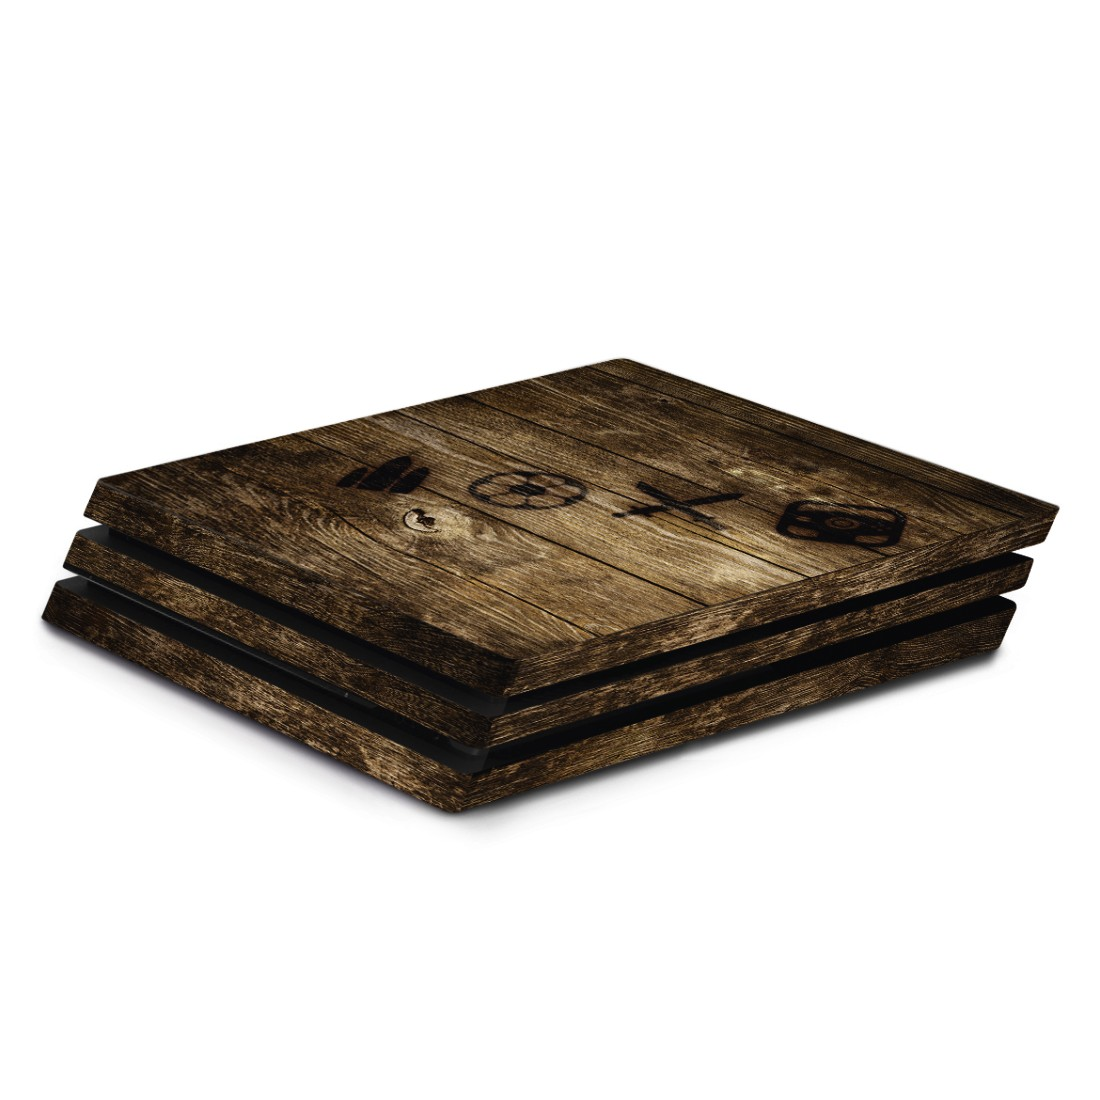 "awx High-Res Appliance - Hama, ""Wood"" Design Skin for PlayStation 4 PRO"